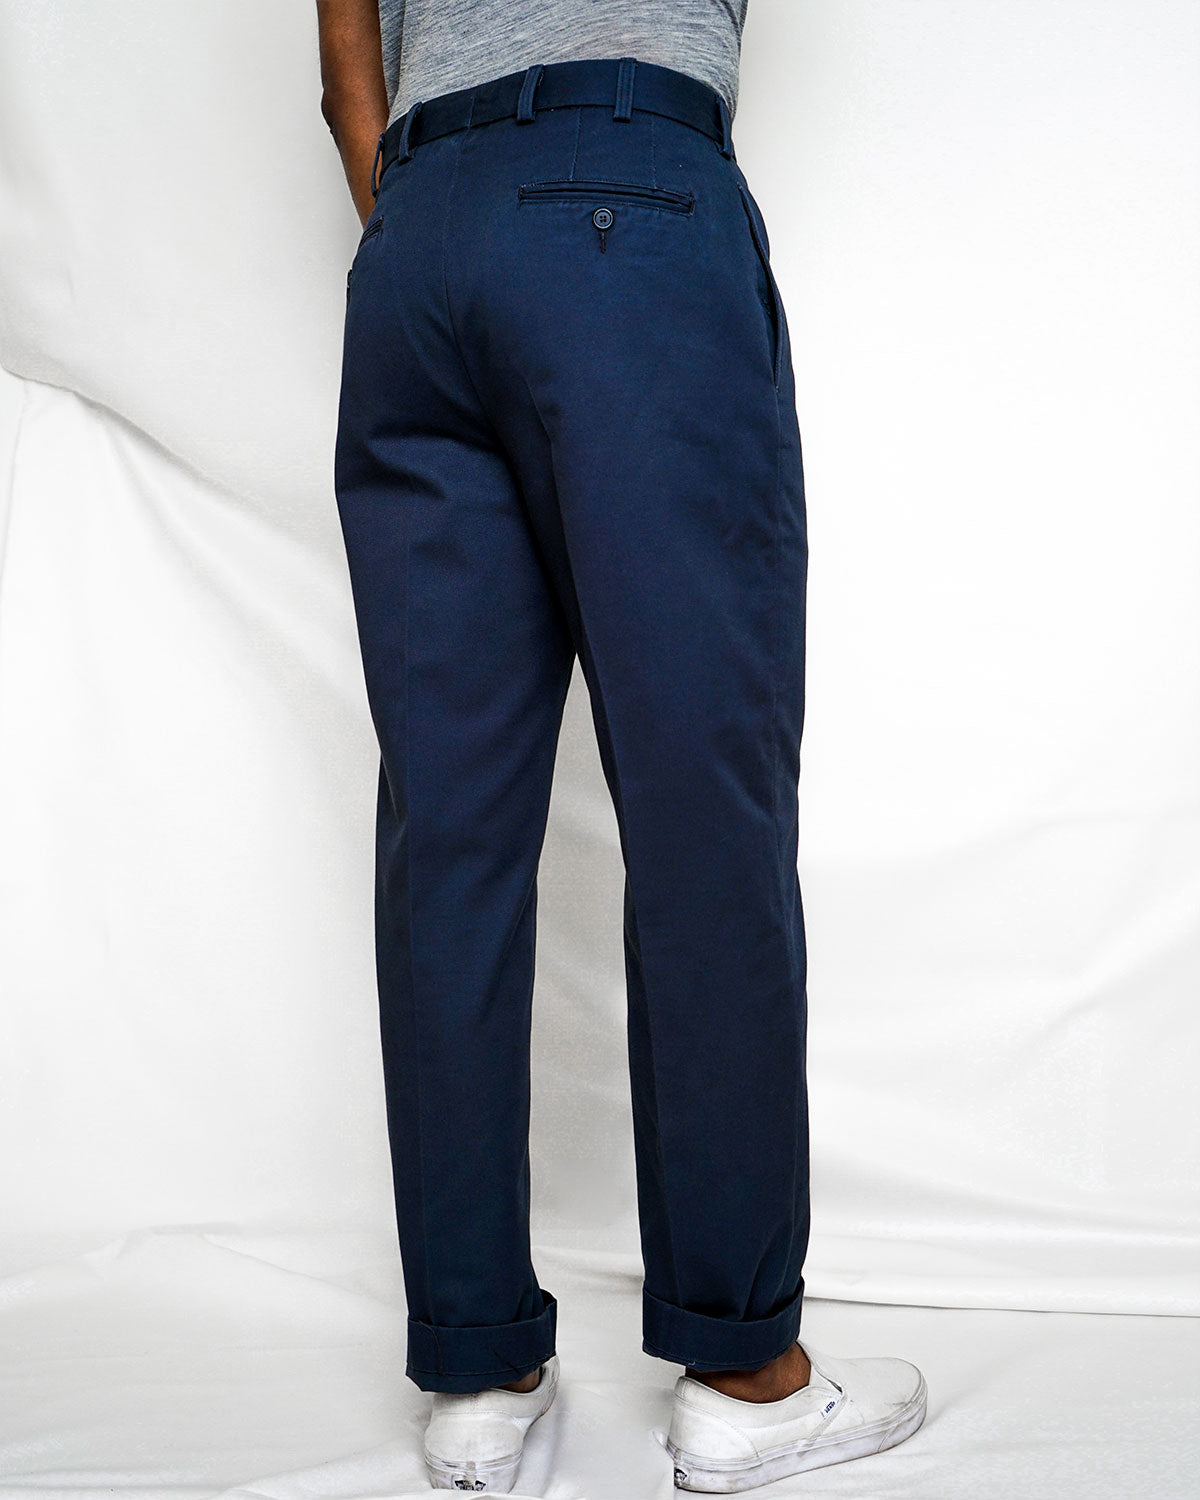 7oz Cotton Chino, Navy